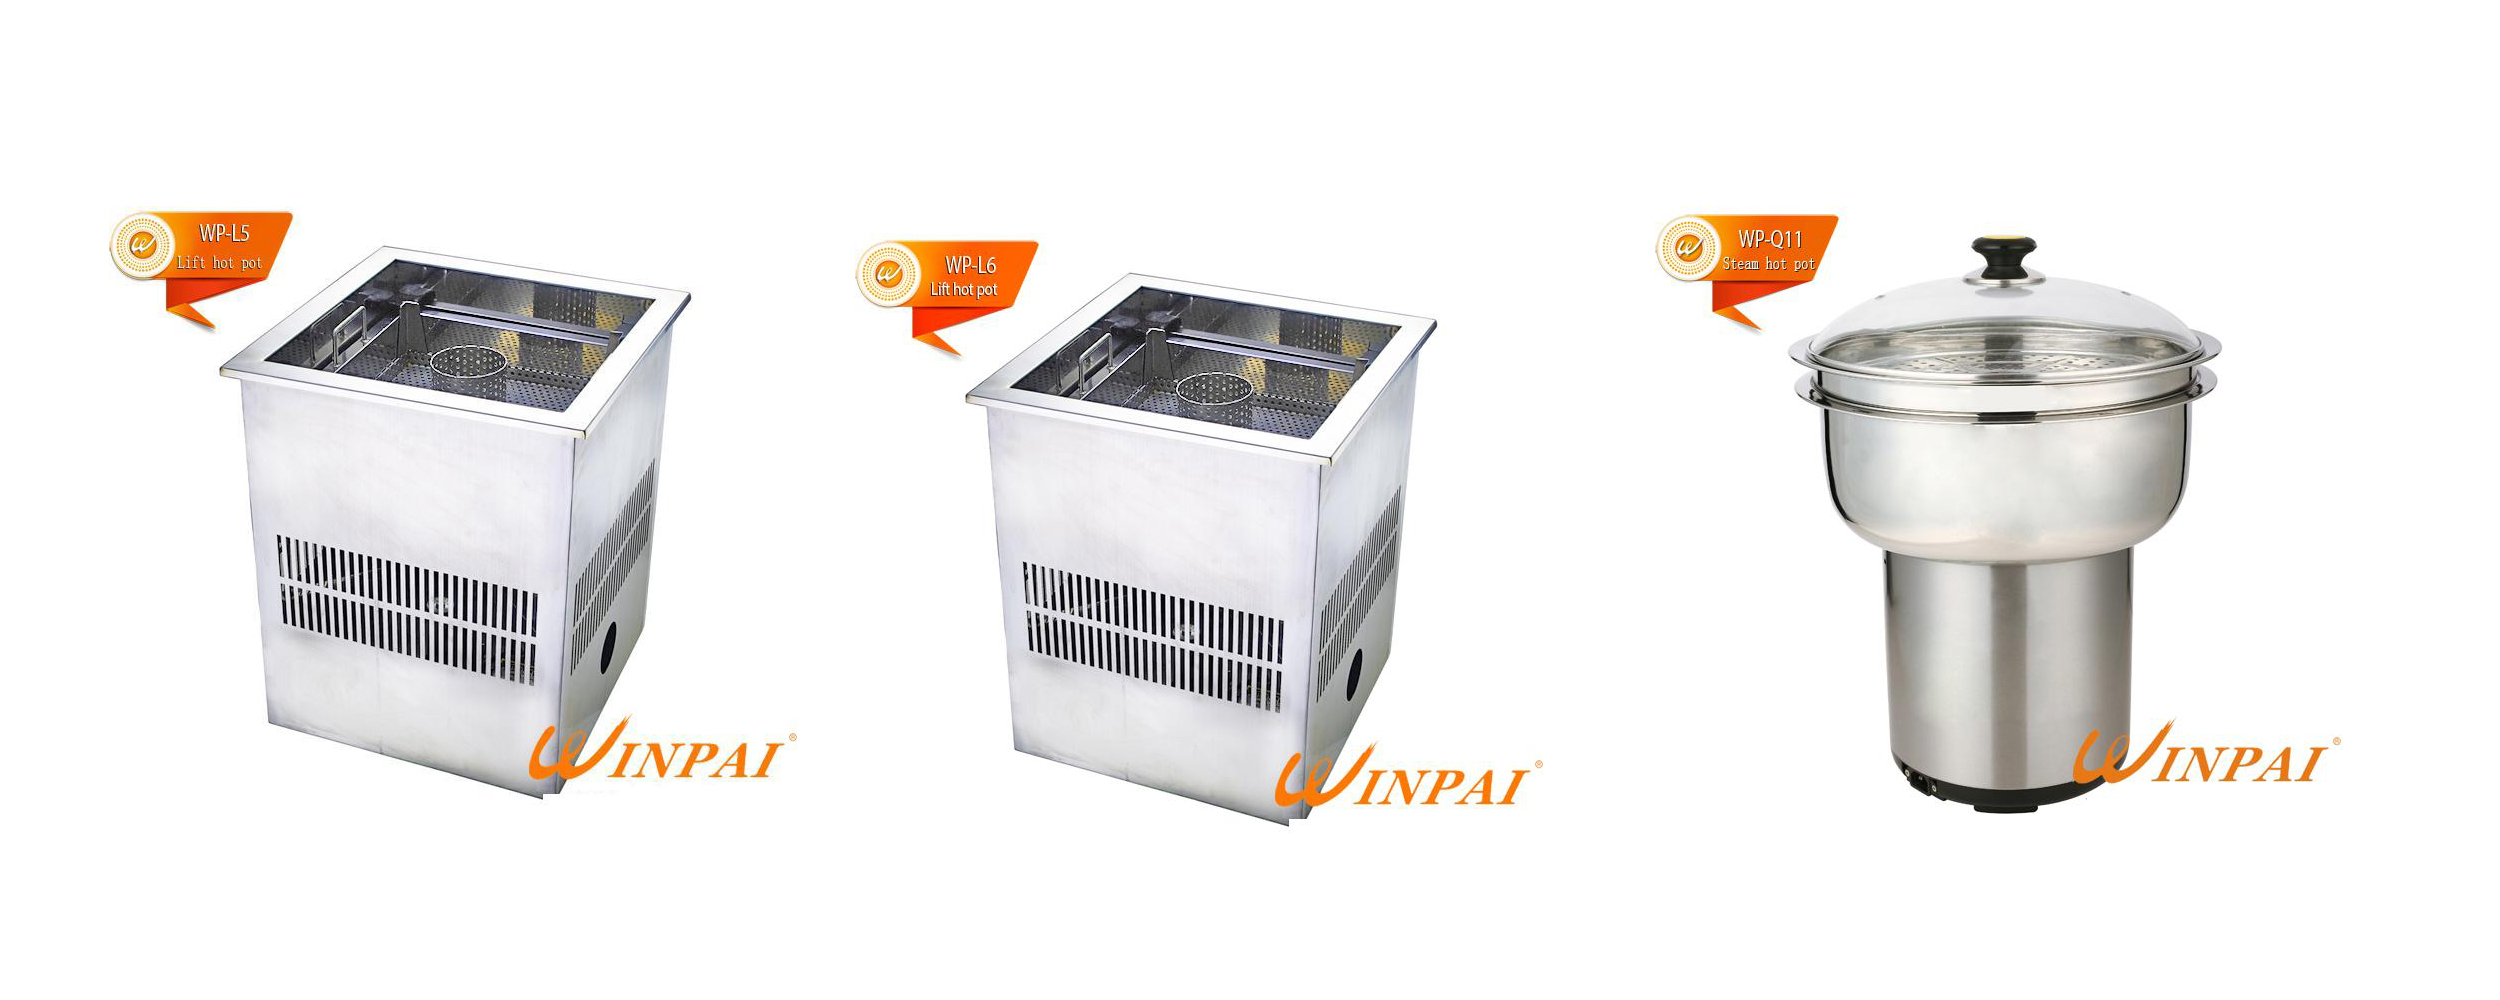 safety induction stove tops for sale table manufacturers for restaurant-5